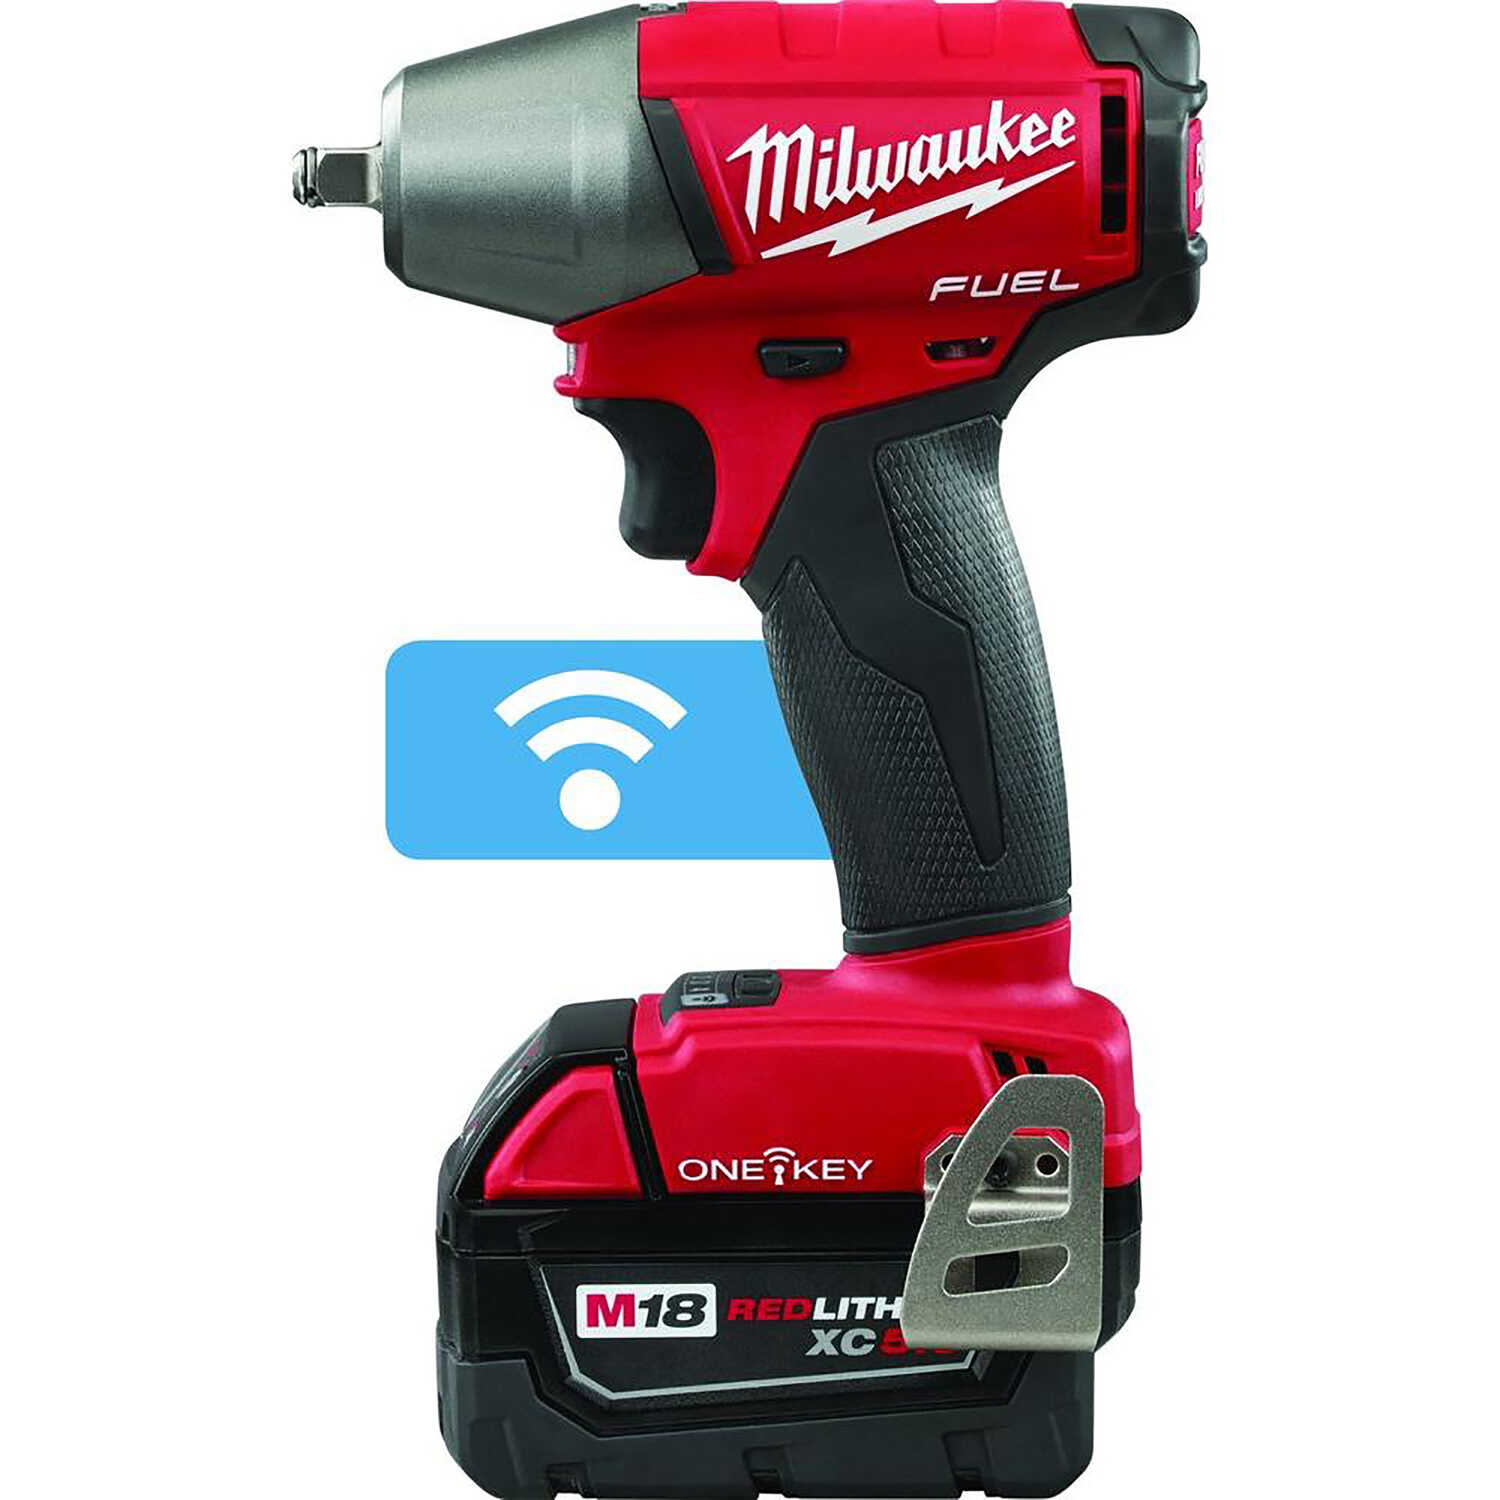 Milwaukee  M18 Fuel  3/8 in. Cordless  Brushless Impact Wrench with Friction Ring  Kit 18 volt 5 amp